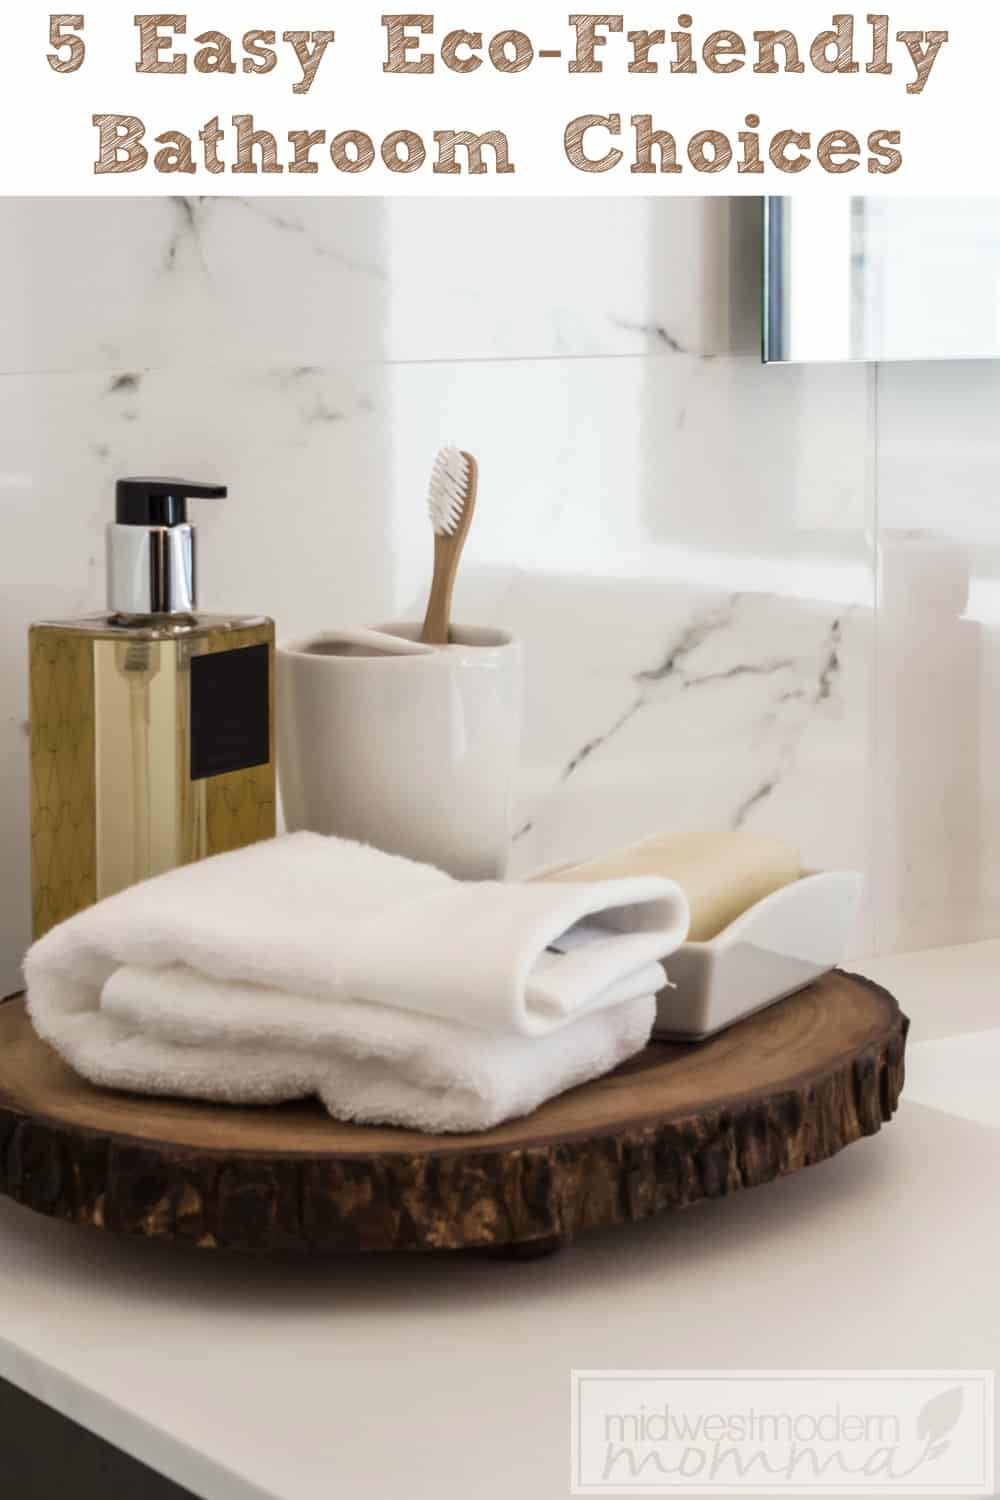 5 Easy Ecofriendly Bathroom Choices